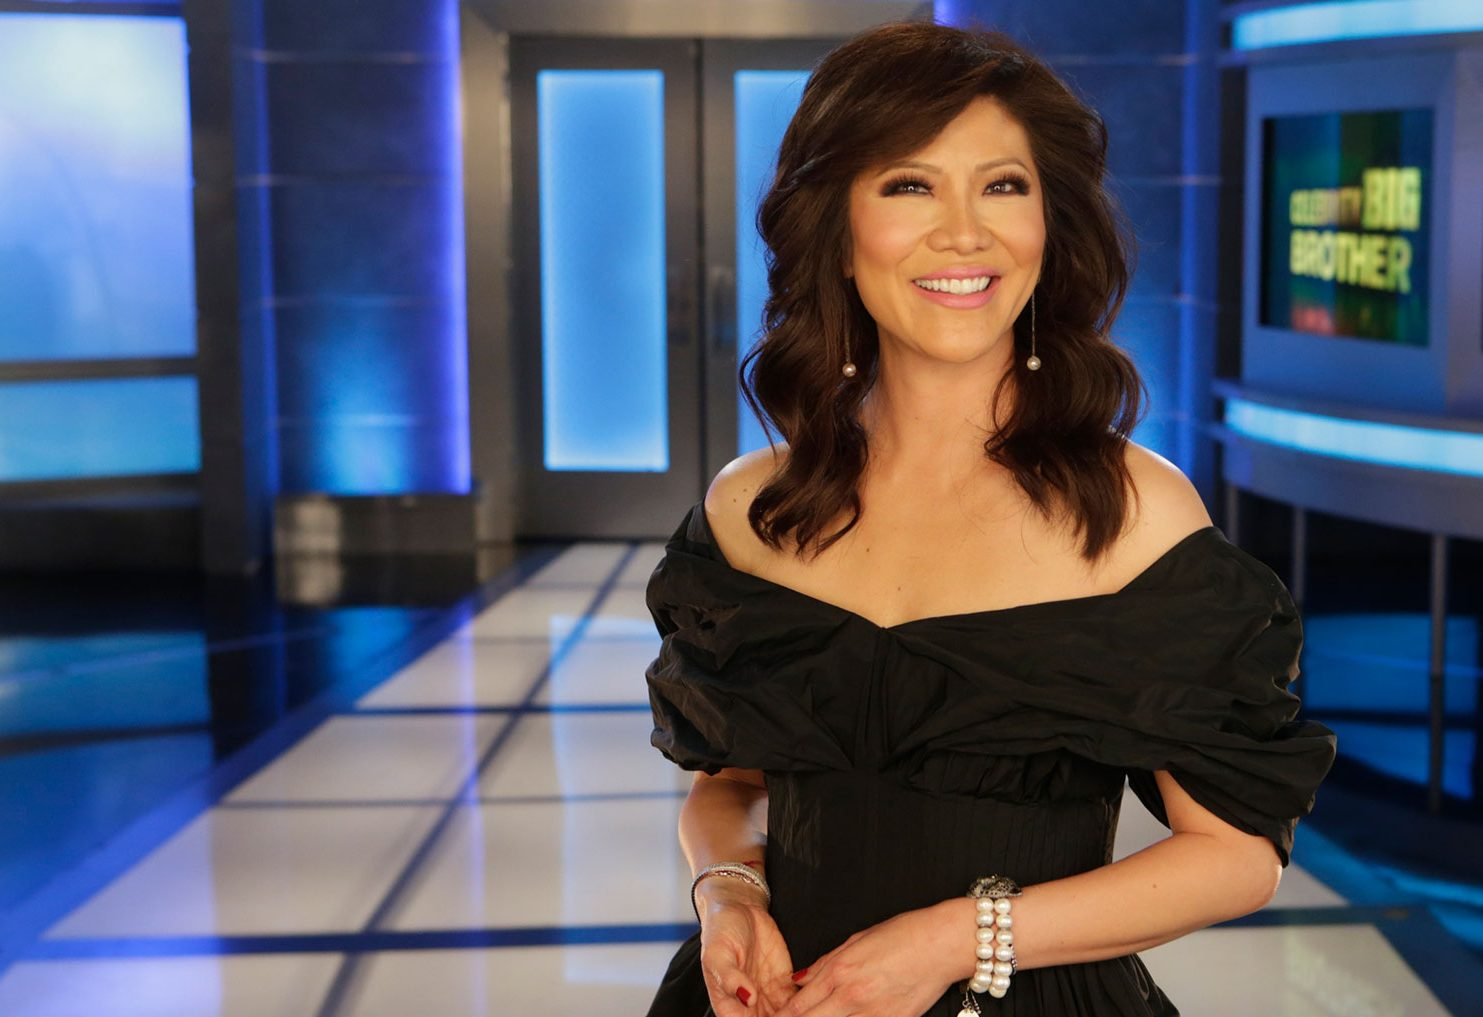 Friday Ratings: 'Big Brother 23' Has You Watching, As It Tops The Evening Demos